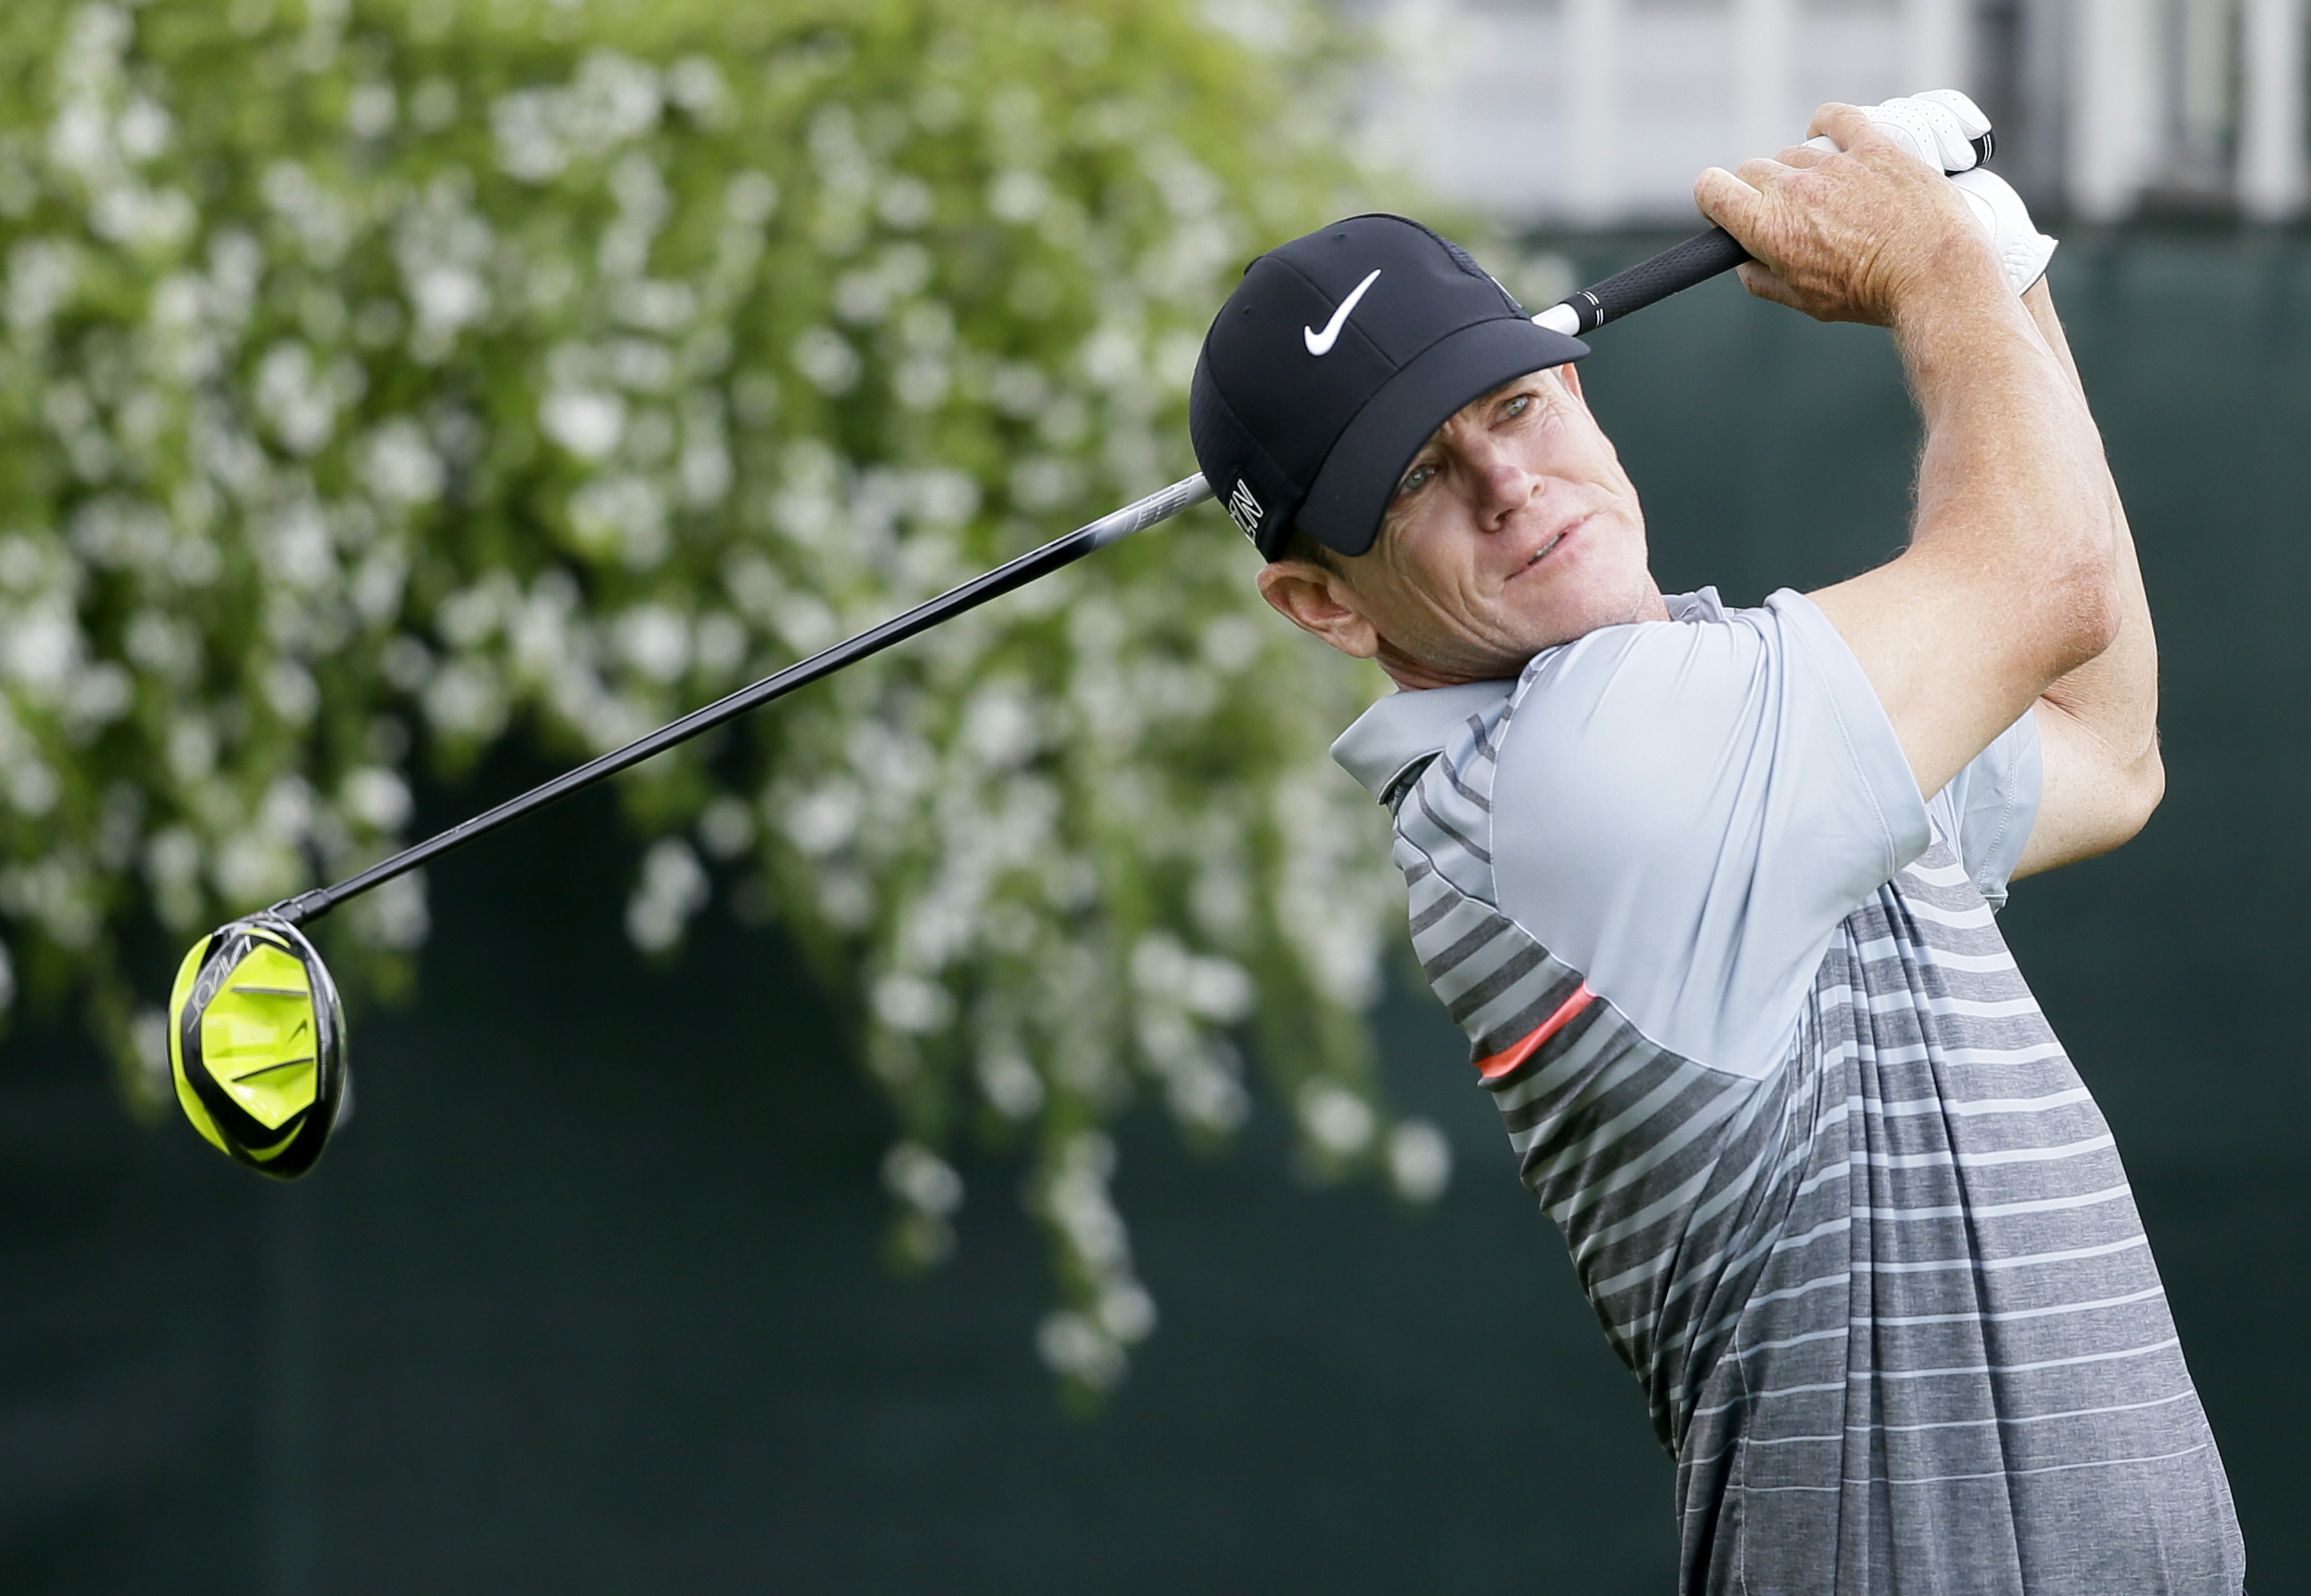 Brian Henninger watches his shot off the first tee during the first round of the Champions Tour's Principal Charity Classic golf tournament, Friday, June 5, 2015, in Des Moines, Iowa. (AP Photo/Charlie Neibergall)